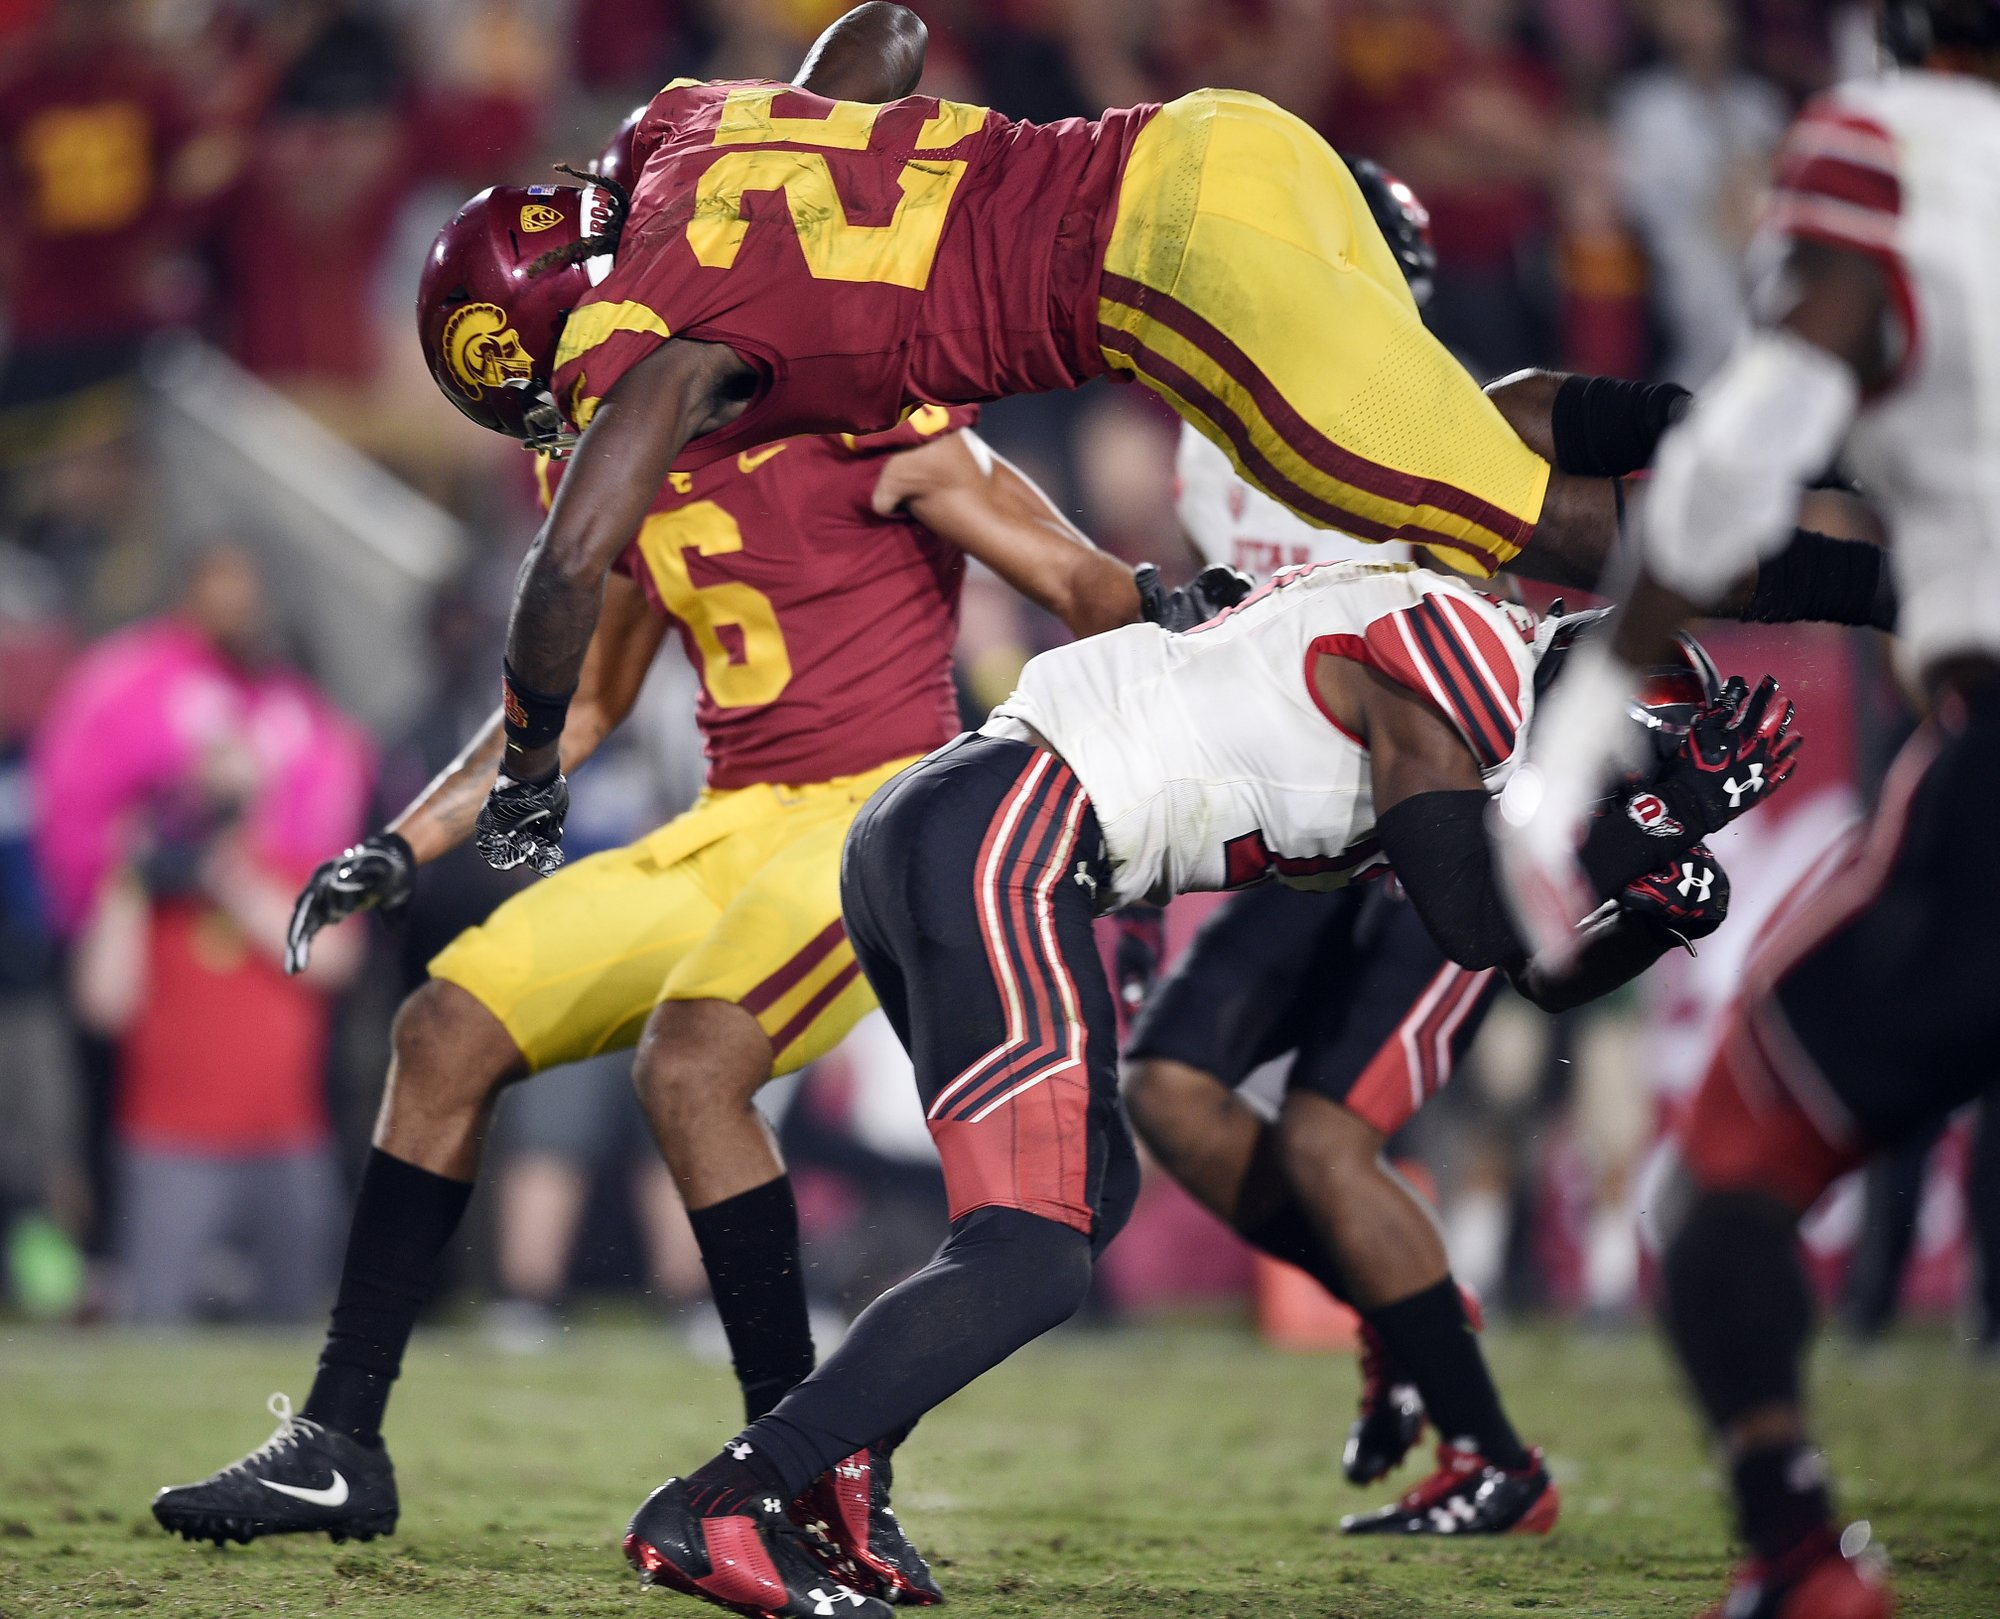 Surge Seen in Concussions Among College Football Players